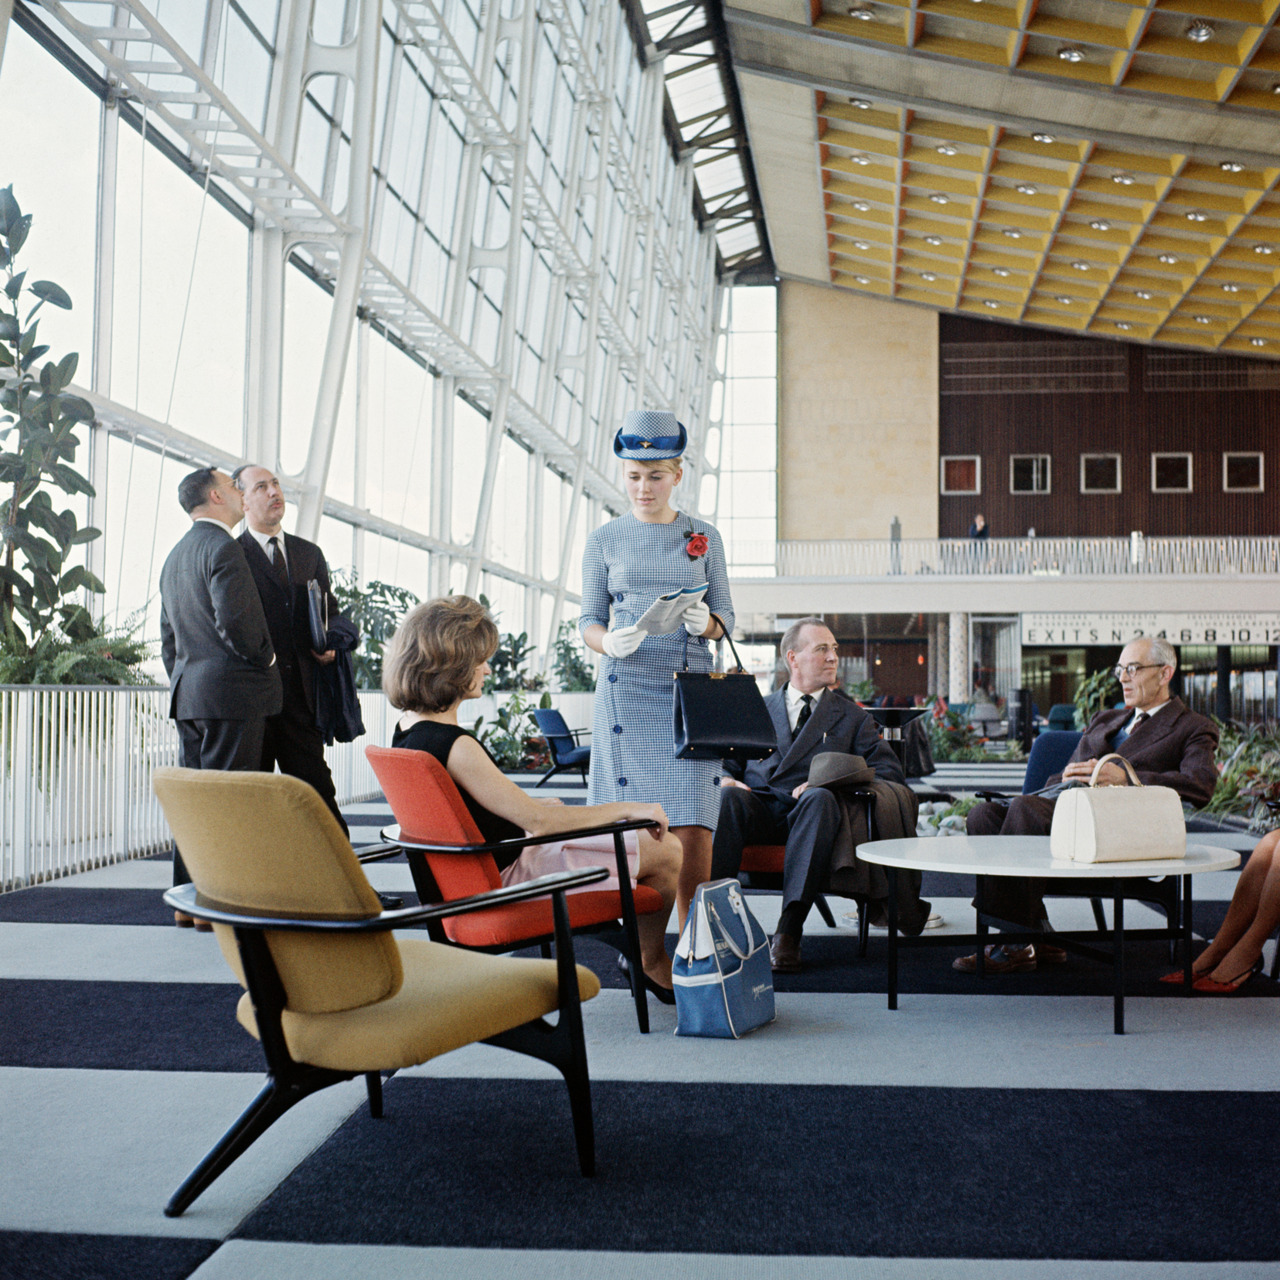 Alfred Hendrickx S3 Chairs, Sabena Airlines first class lounge, Brussels 1958